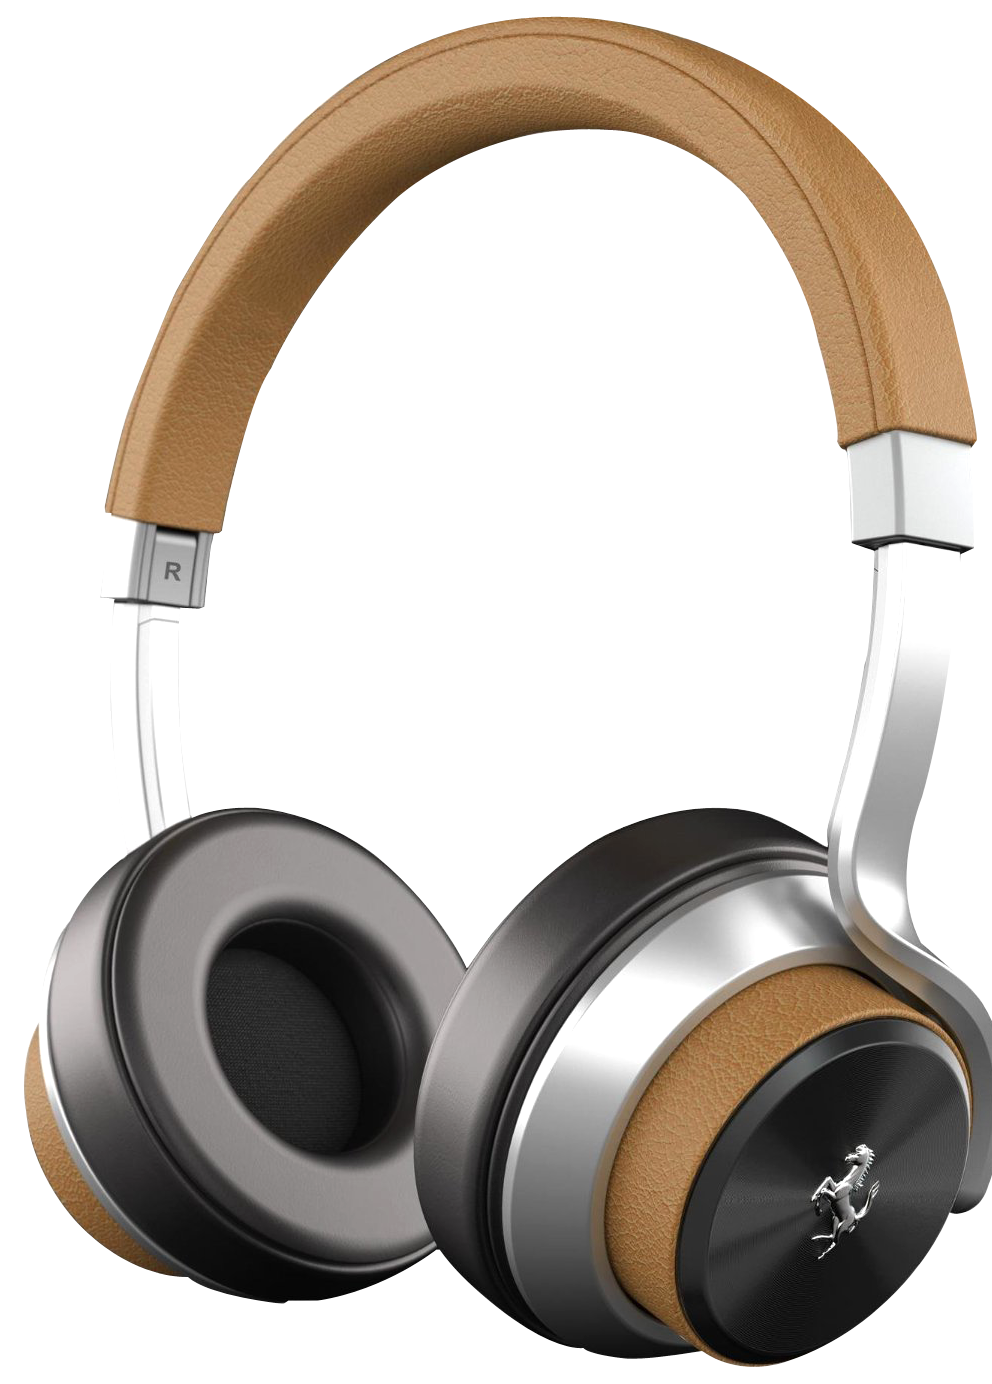 Png image purepng free. Headphones clipart iphone headphone